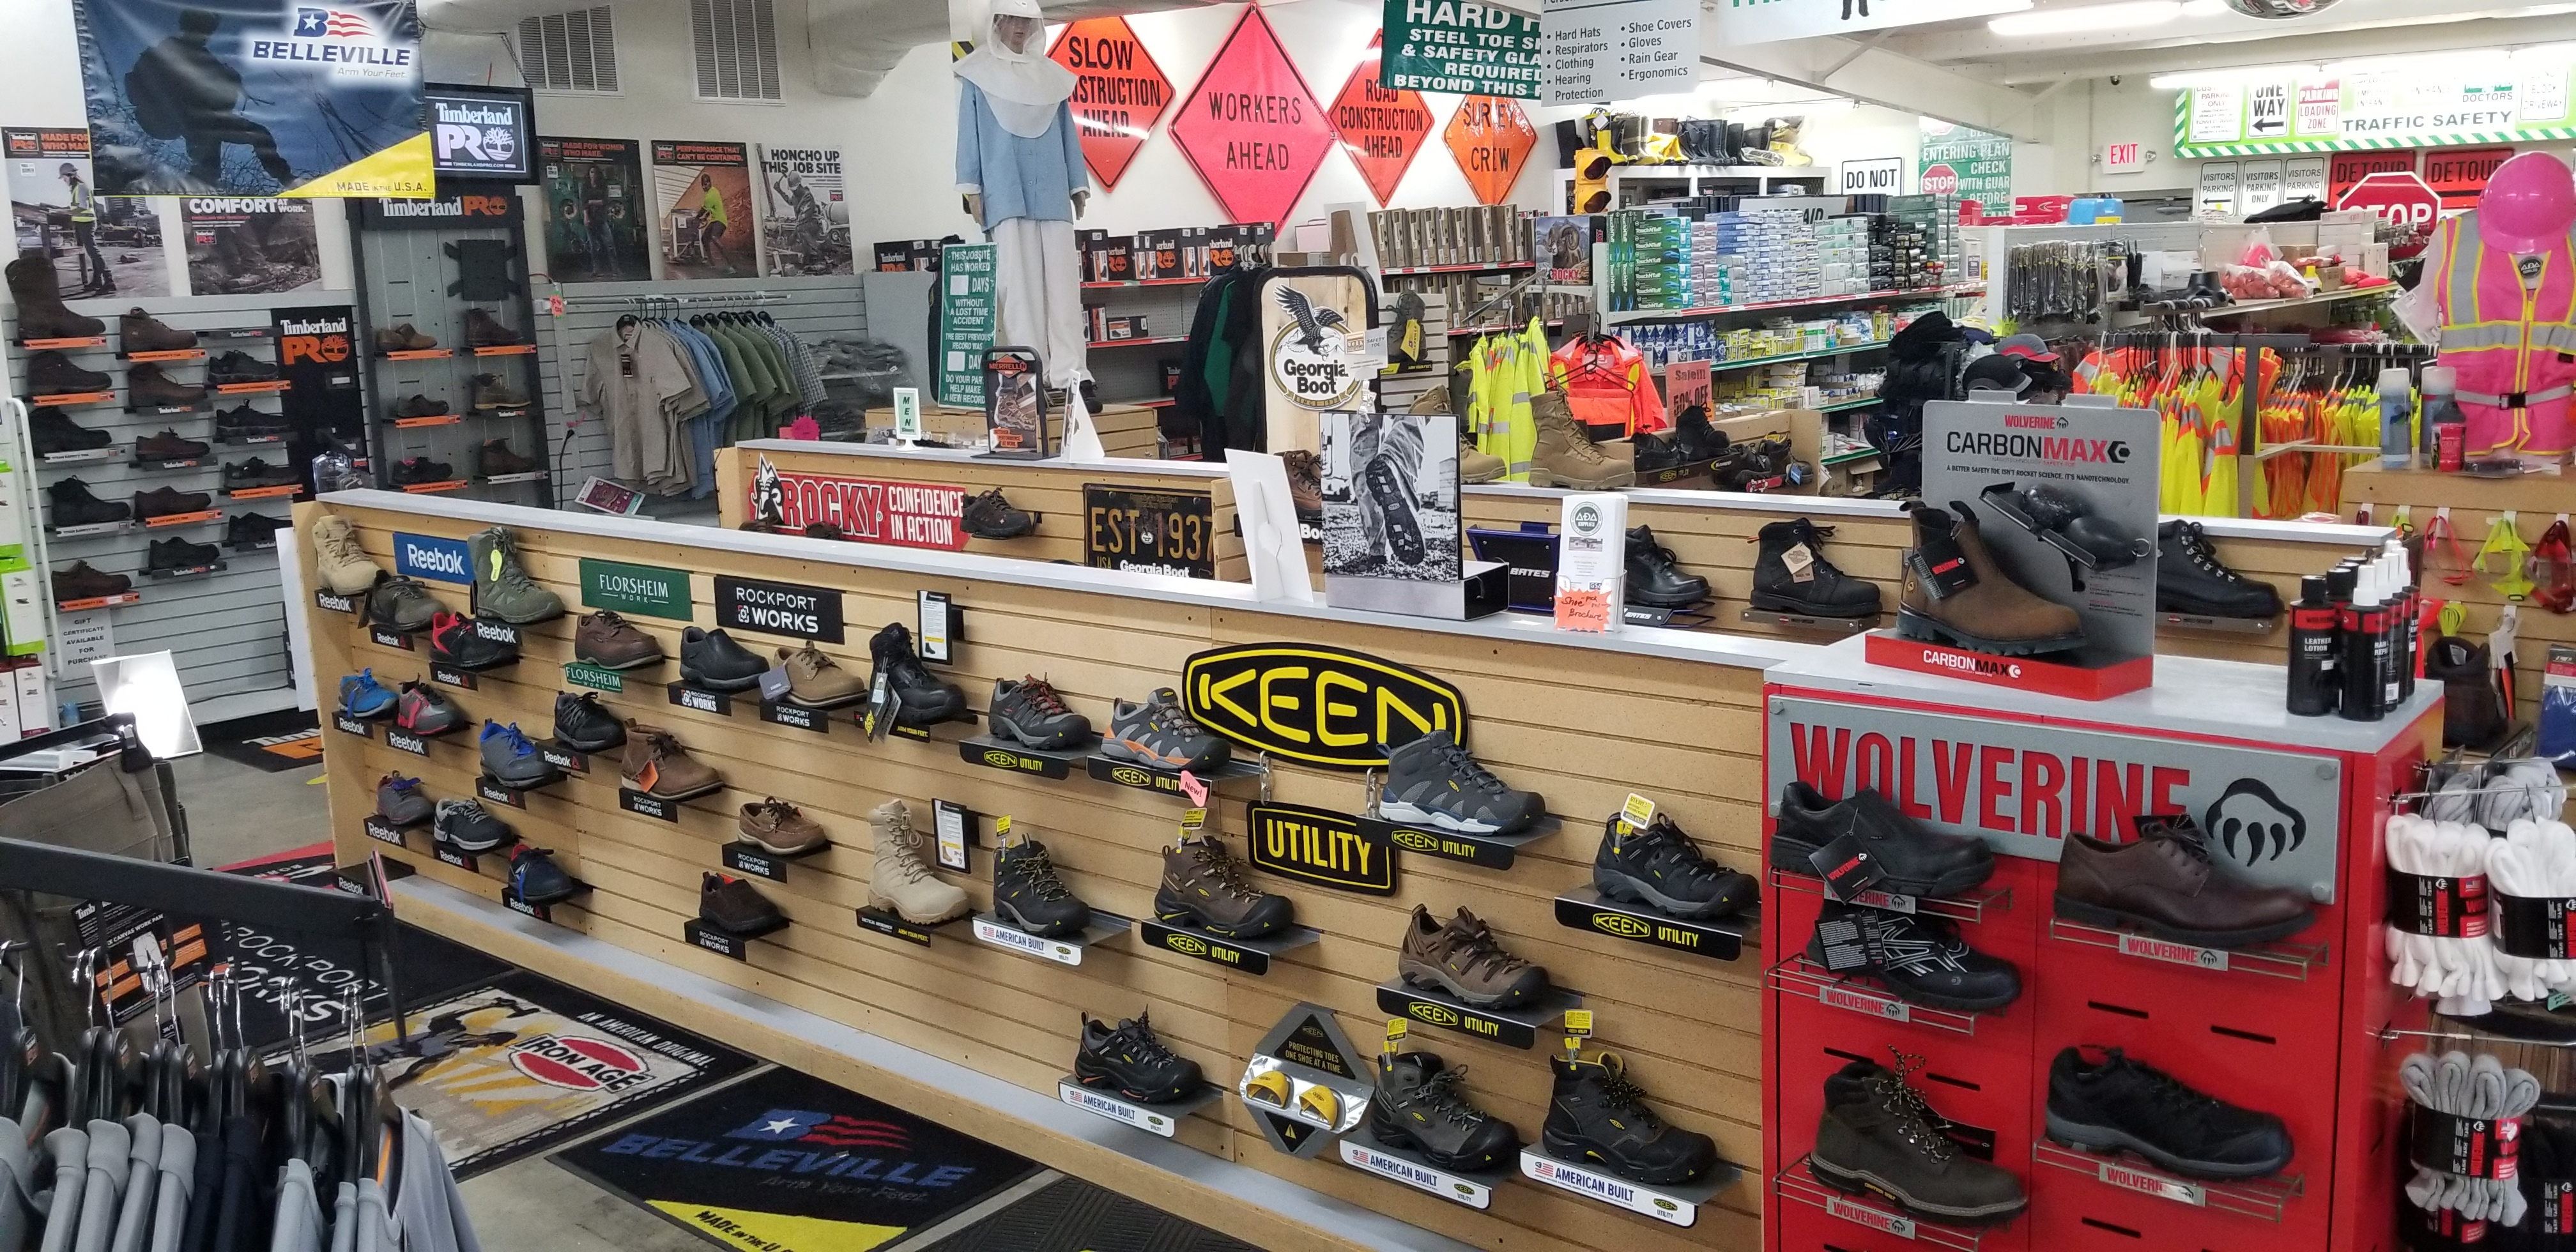 We Carry an Extensive Stock of Safety Toe Shoes & Boots. View What Brands We Carry Here.